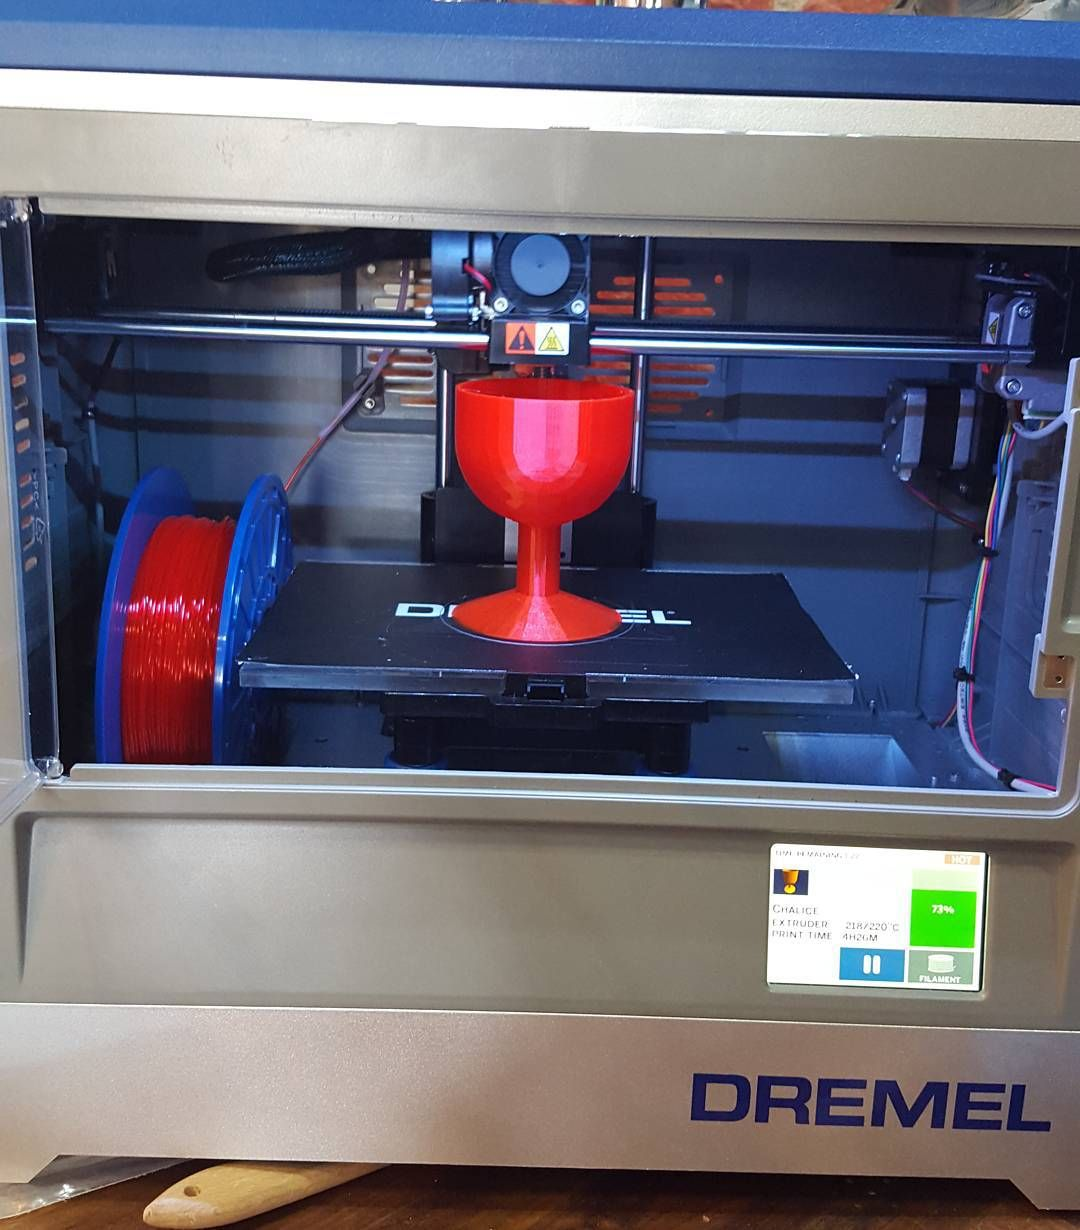 Please pass me my chalice my good sir! #3dPrinting #Dremel #GoMakeThings #SproutTour #HpSproutTour #Technology #Chalice #Red #Shiny by gomakethings_west